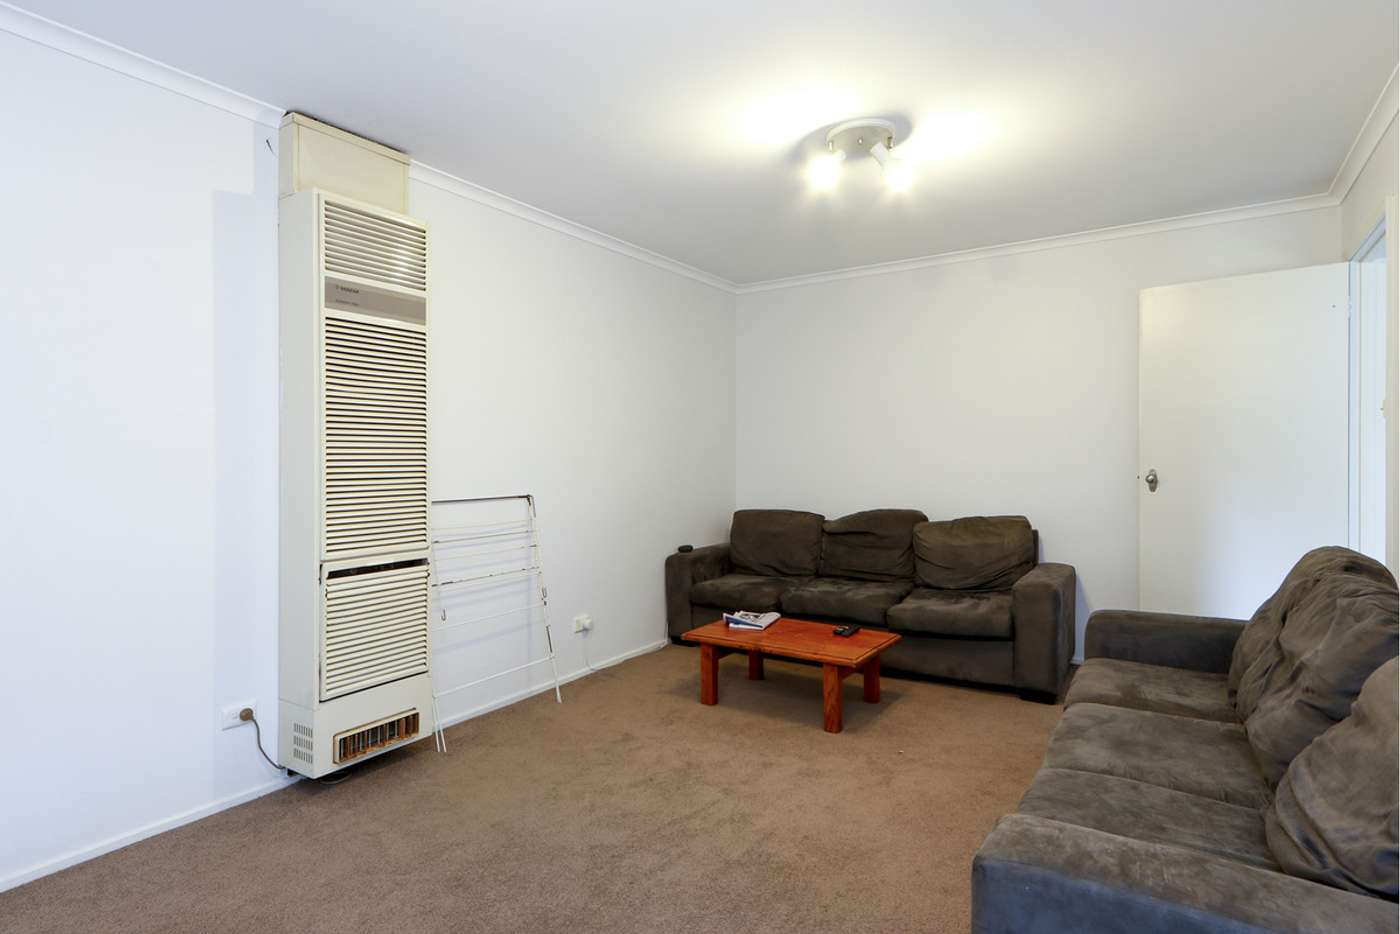 Sixth view of Homely house listing, 227 Dawson Street, Sale VIC 3850